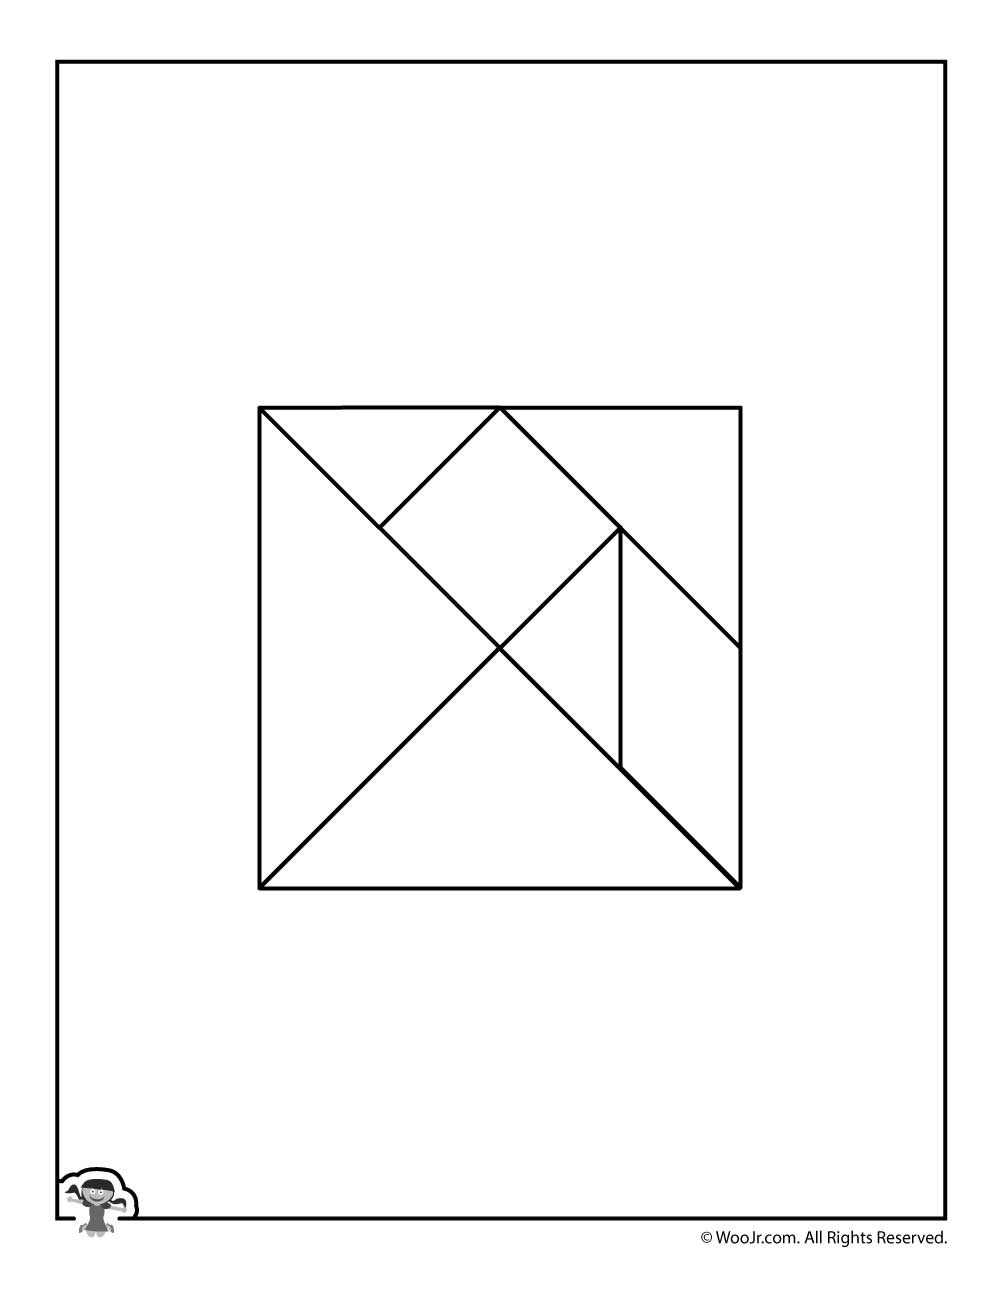 Color Your Own Printable Tangram Puzzle Pieces | Woo! Jr. Kids - Printable Tangram Puzzles